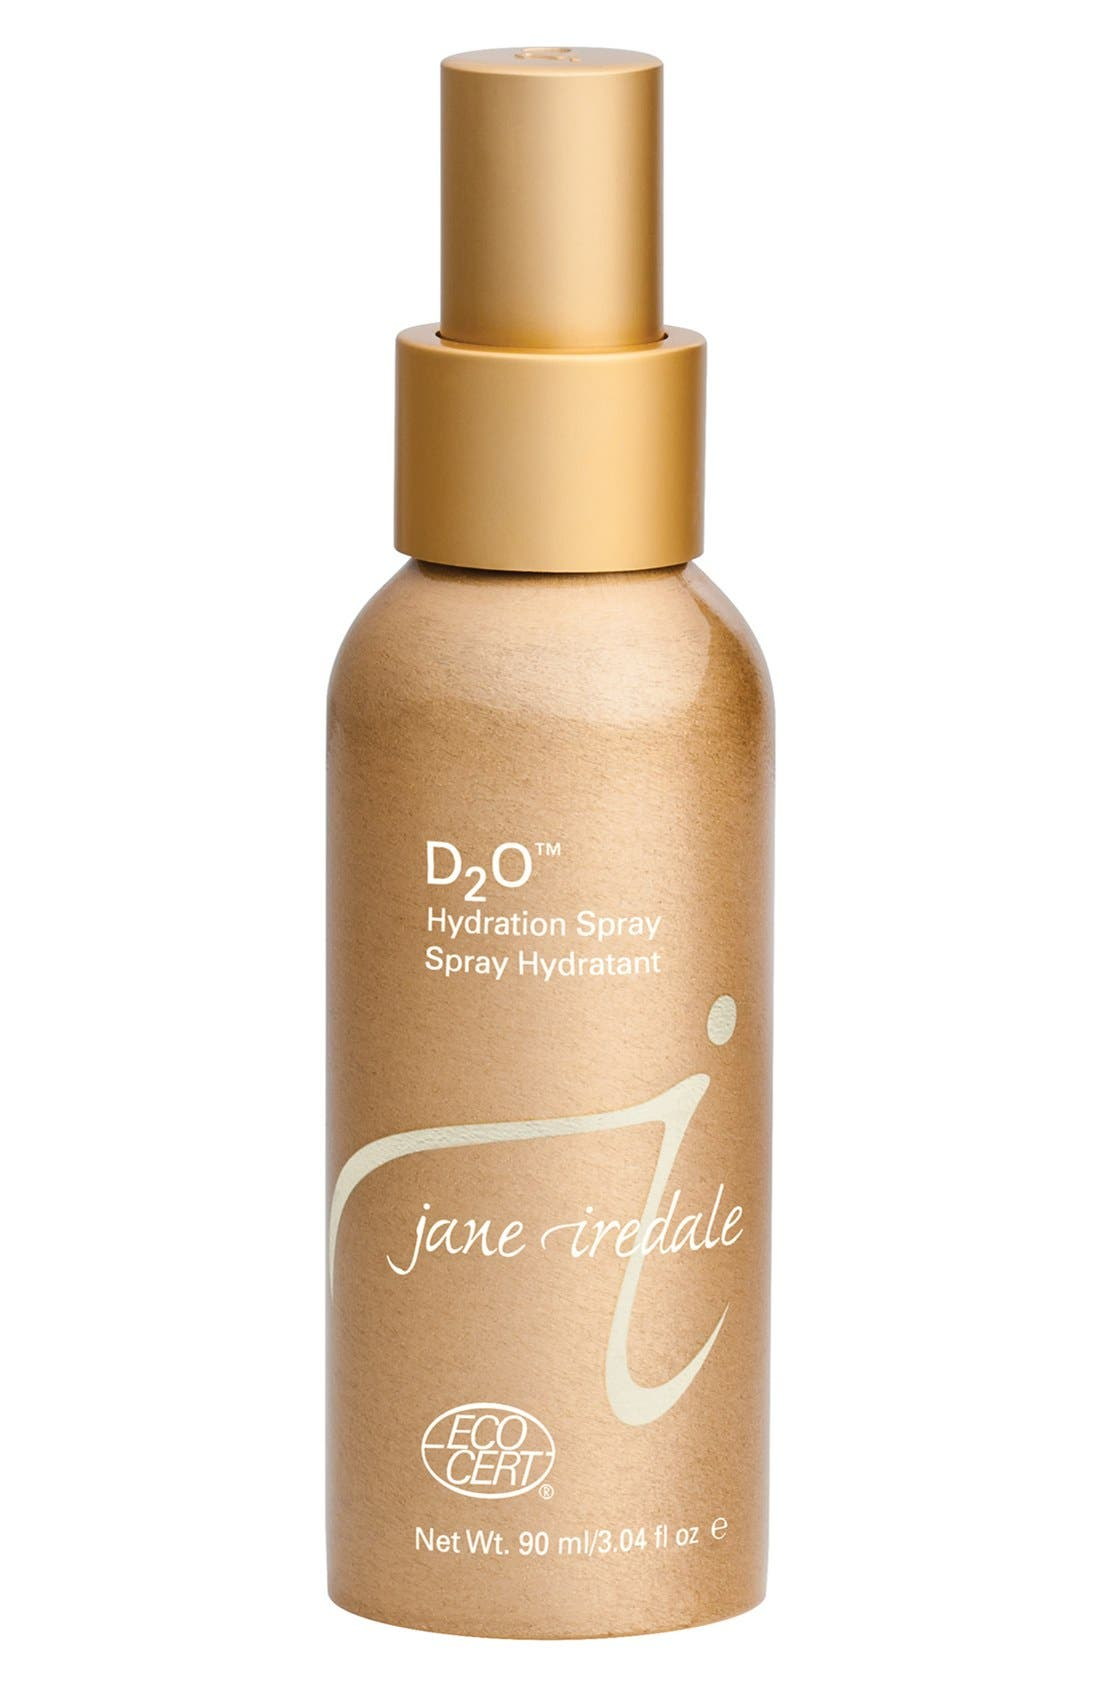 jane iredale 'D2O™' Hydration Spray